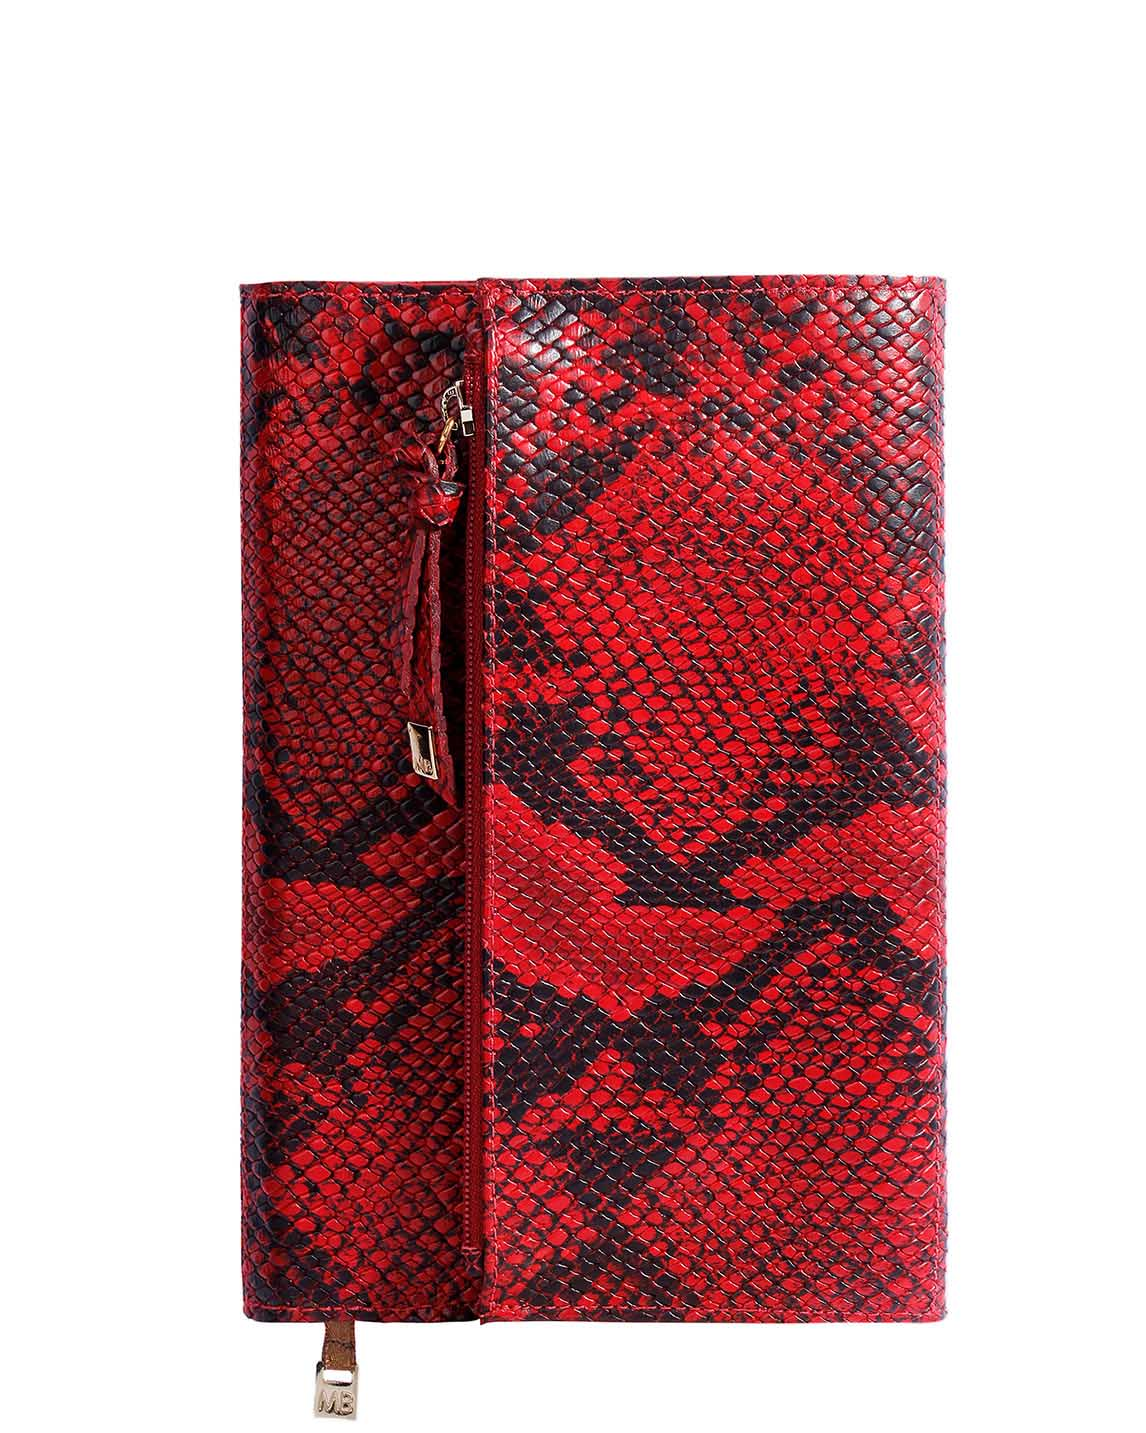 Agenda AG-139 Color Rojo